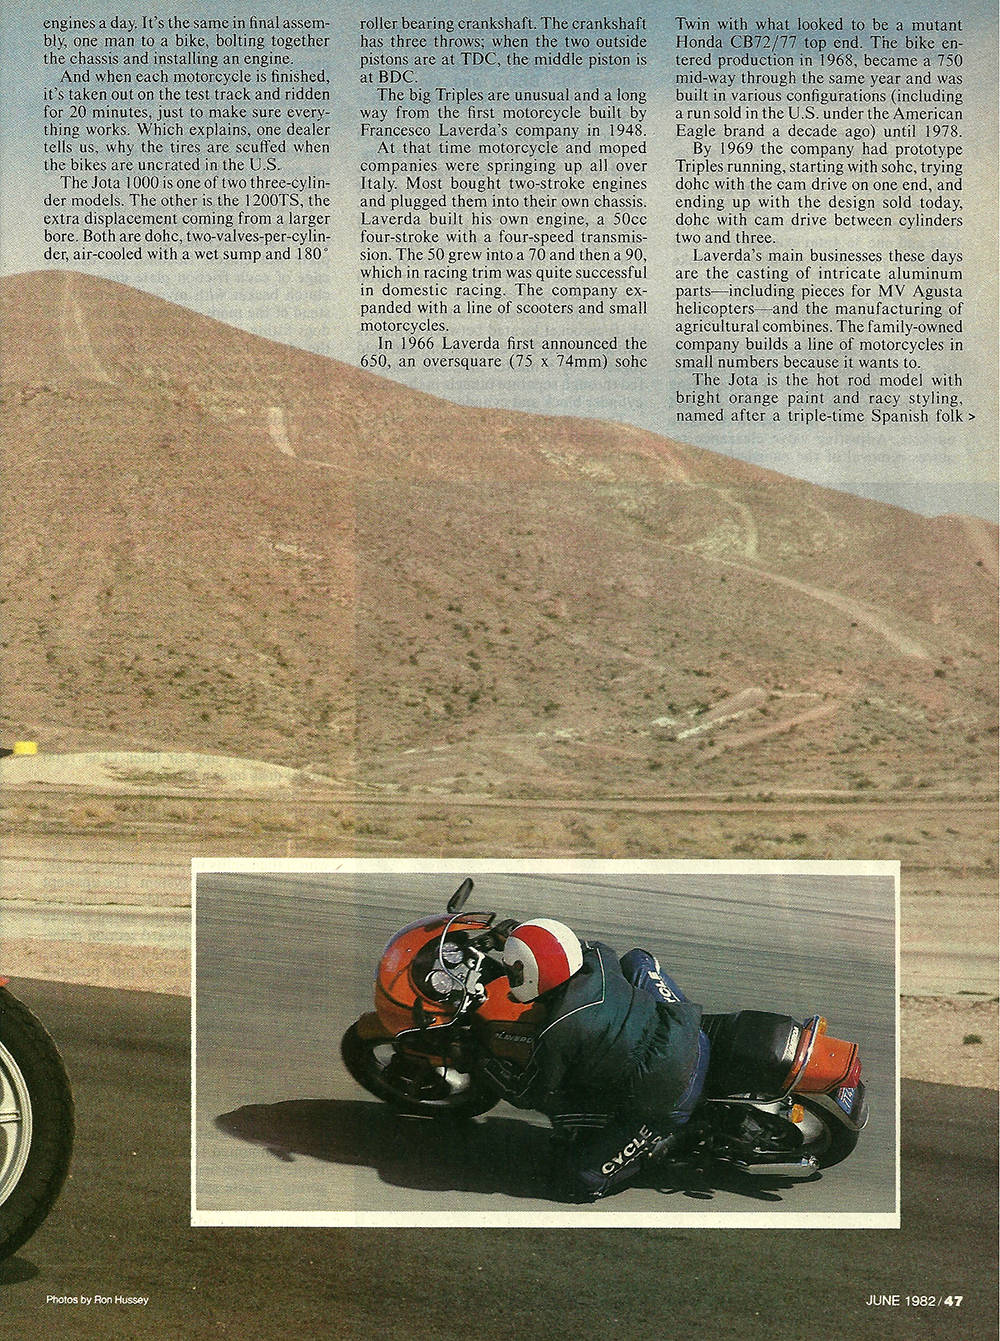 1982 Laverda Jota 1000 road test 2.jpg